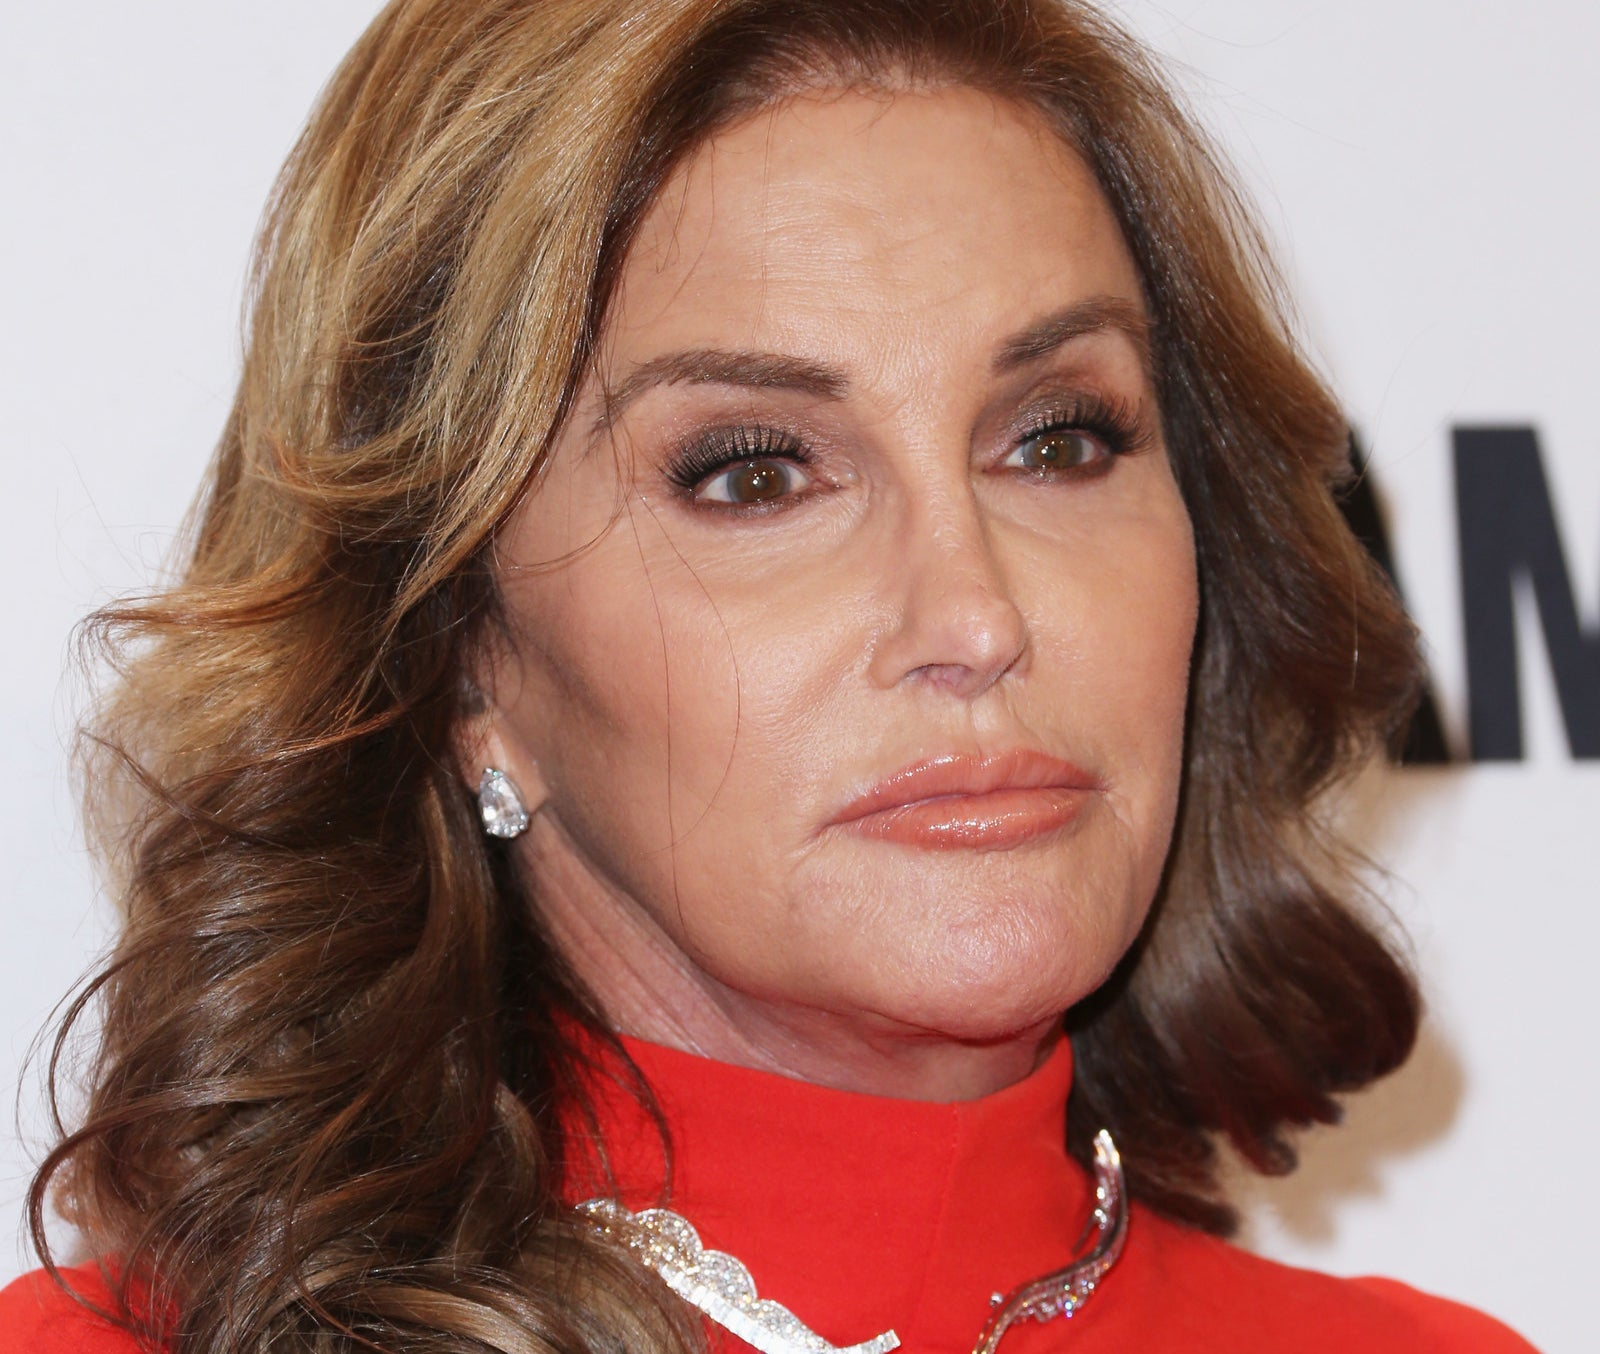 And the paparazzi harassment and scrutiny of the Kardashians isn't limited to pregnancy. Remember when rumours first emerged that Caitlyn Jenner was transitioning, and the paparazzi managed to capture photos of her leaving hospital after having her Adam's apple shaved down?